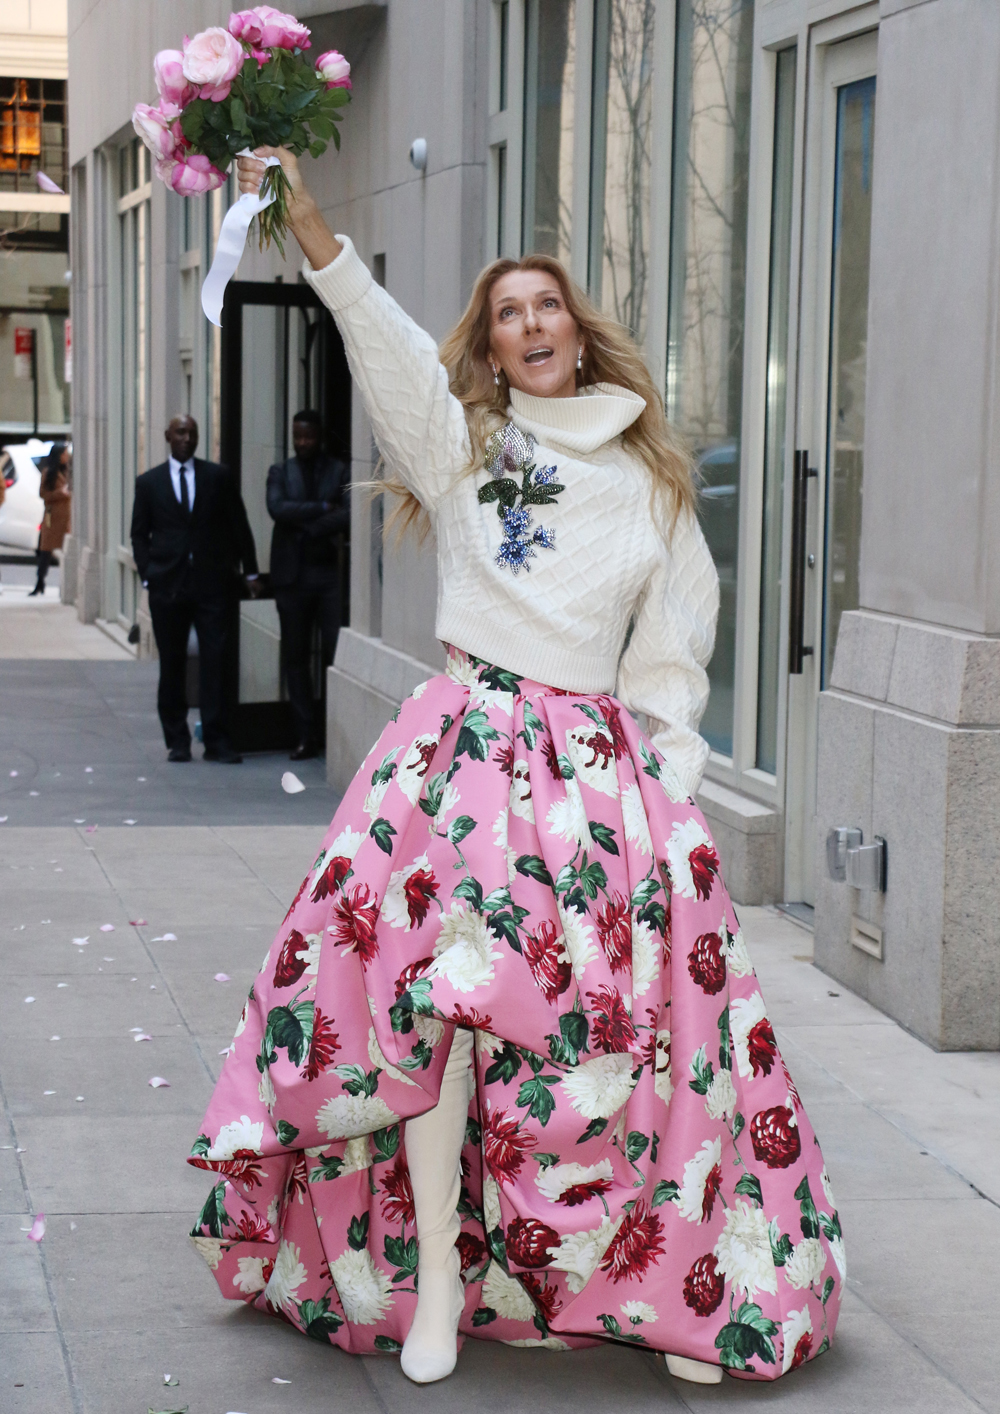 Celine Dion Wows An Oscar De La Renta Outfit In New York City About Her